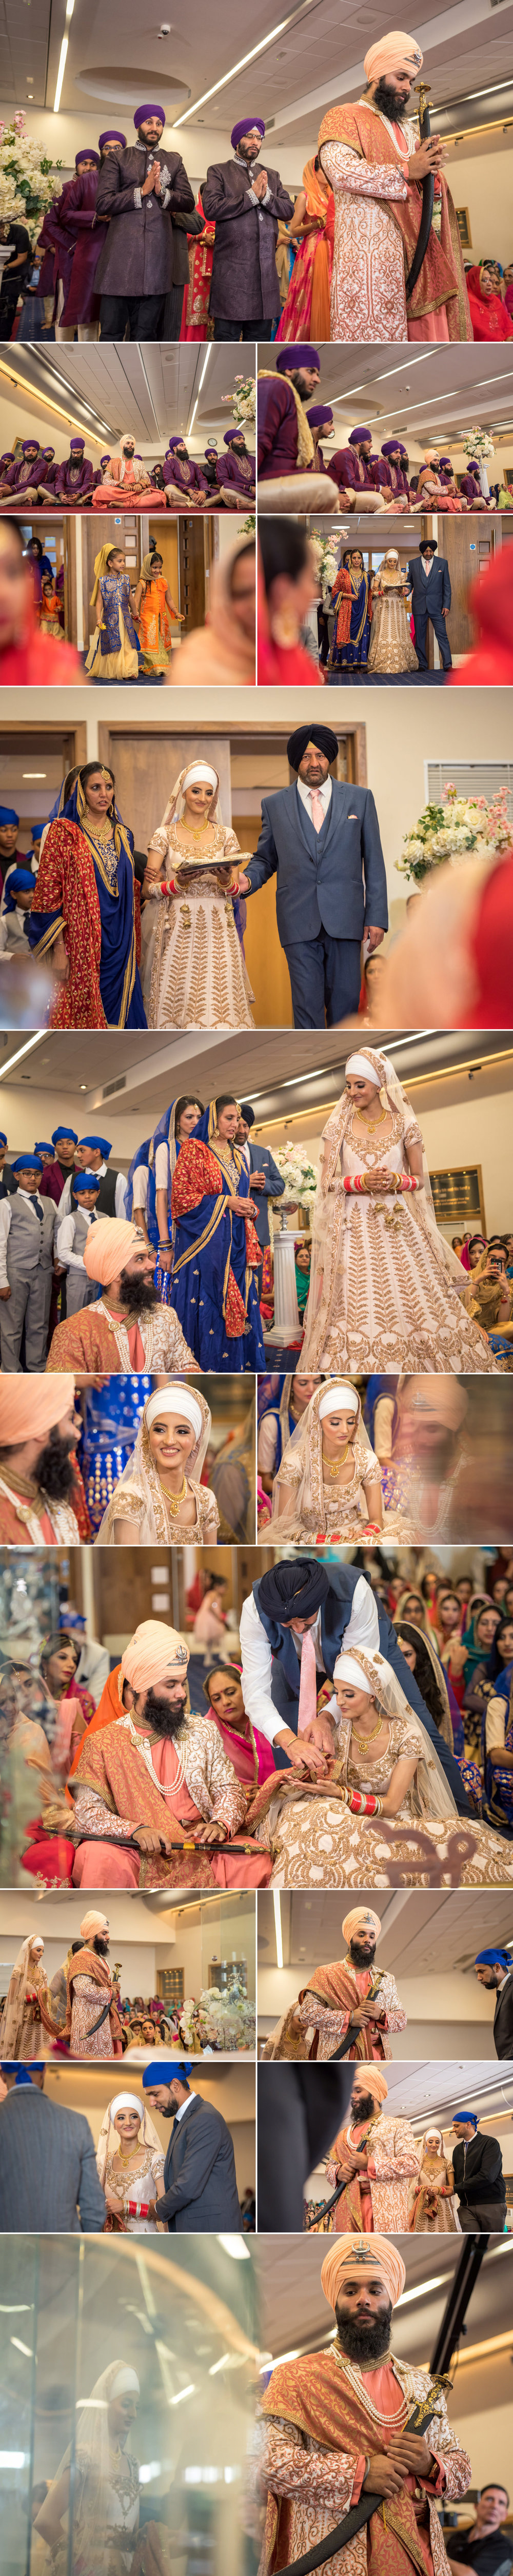 sikh wedding photography guru nanak sikh academy wedding springfield road 2